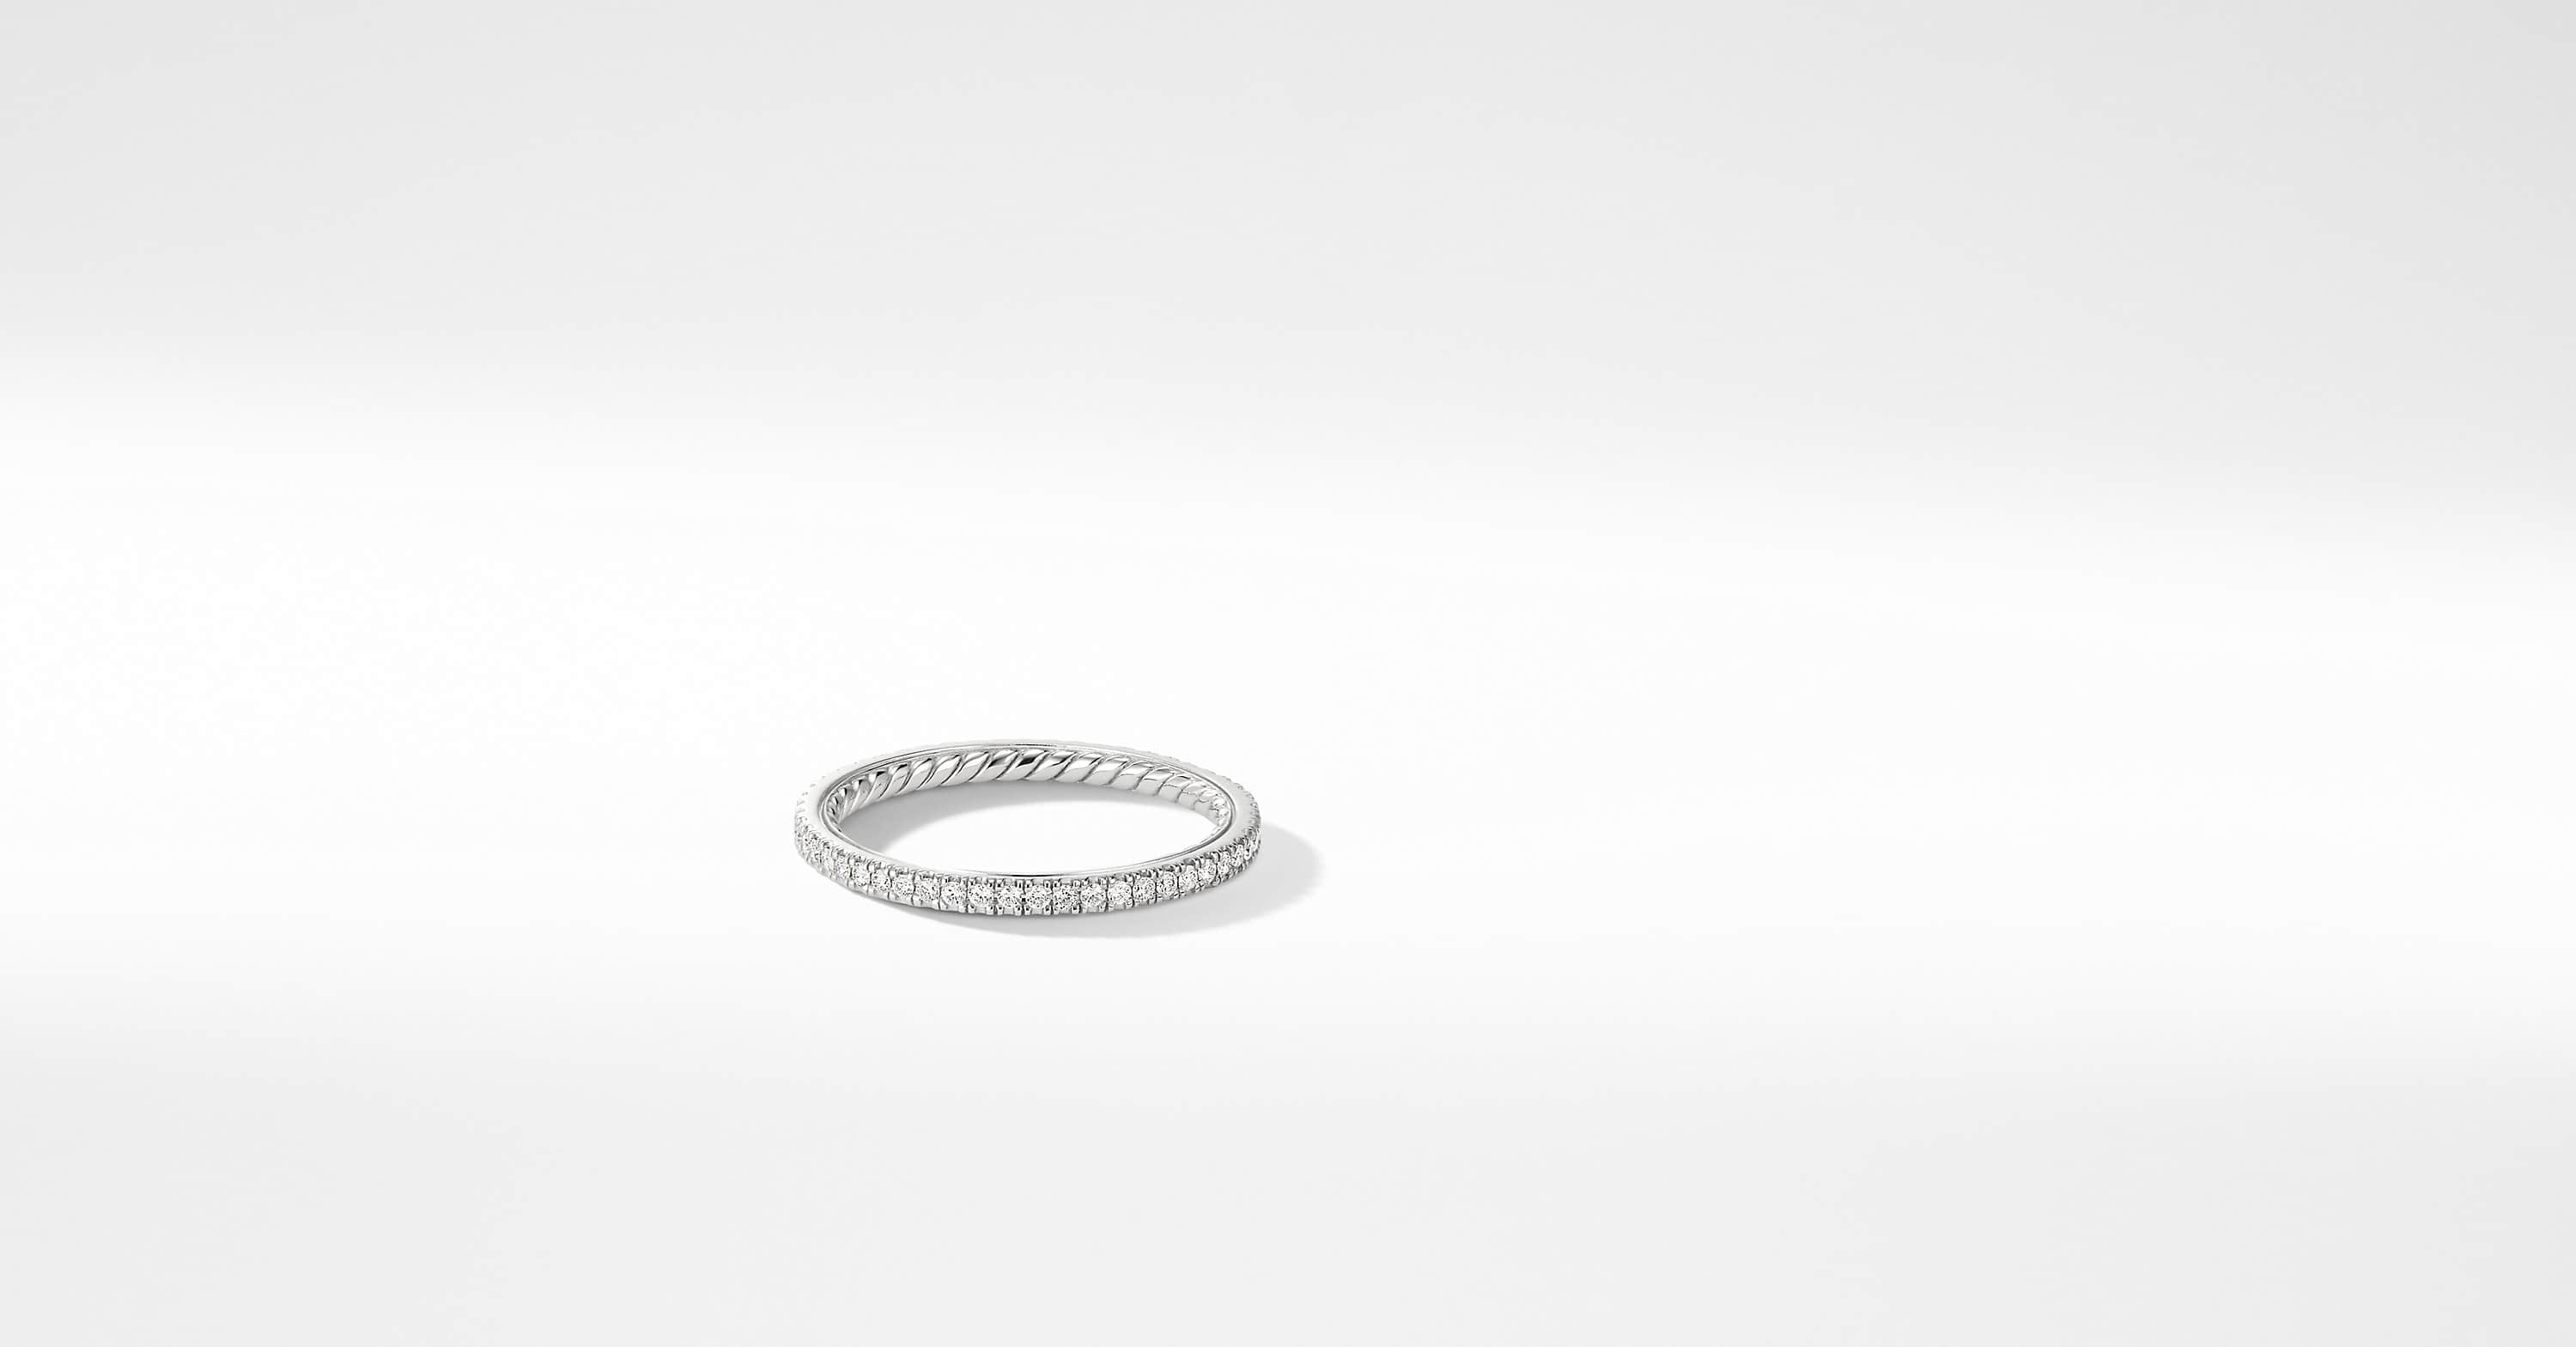 DY Eden Single Row Wedding Band with Diamonds in Platinum, 1.55mm